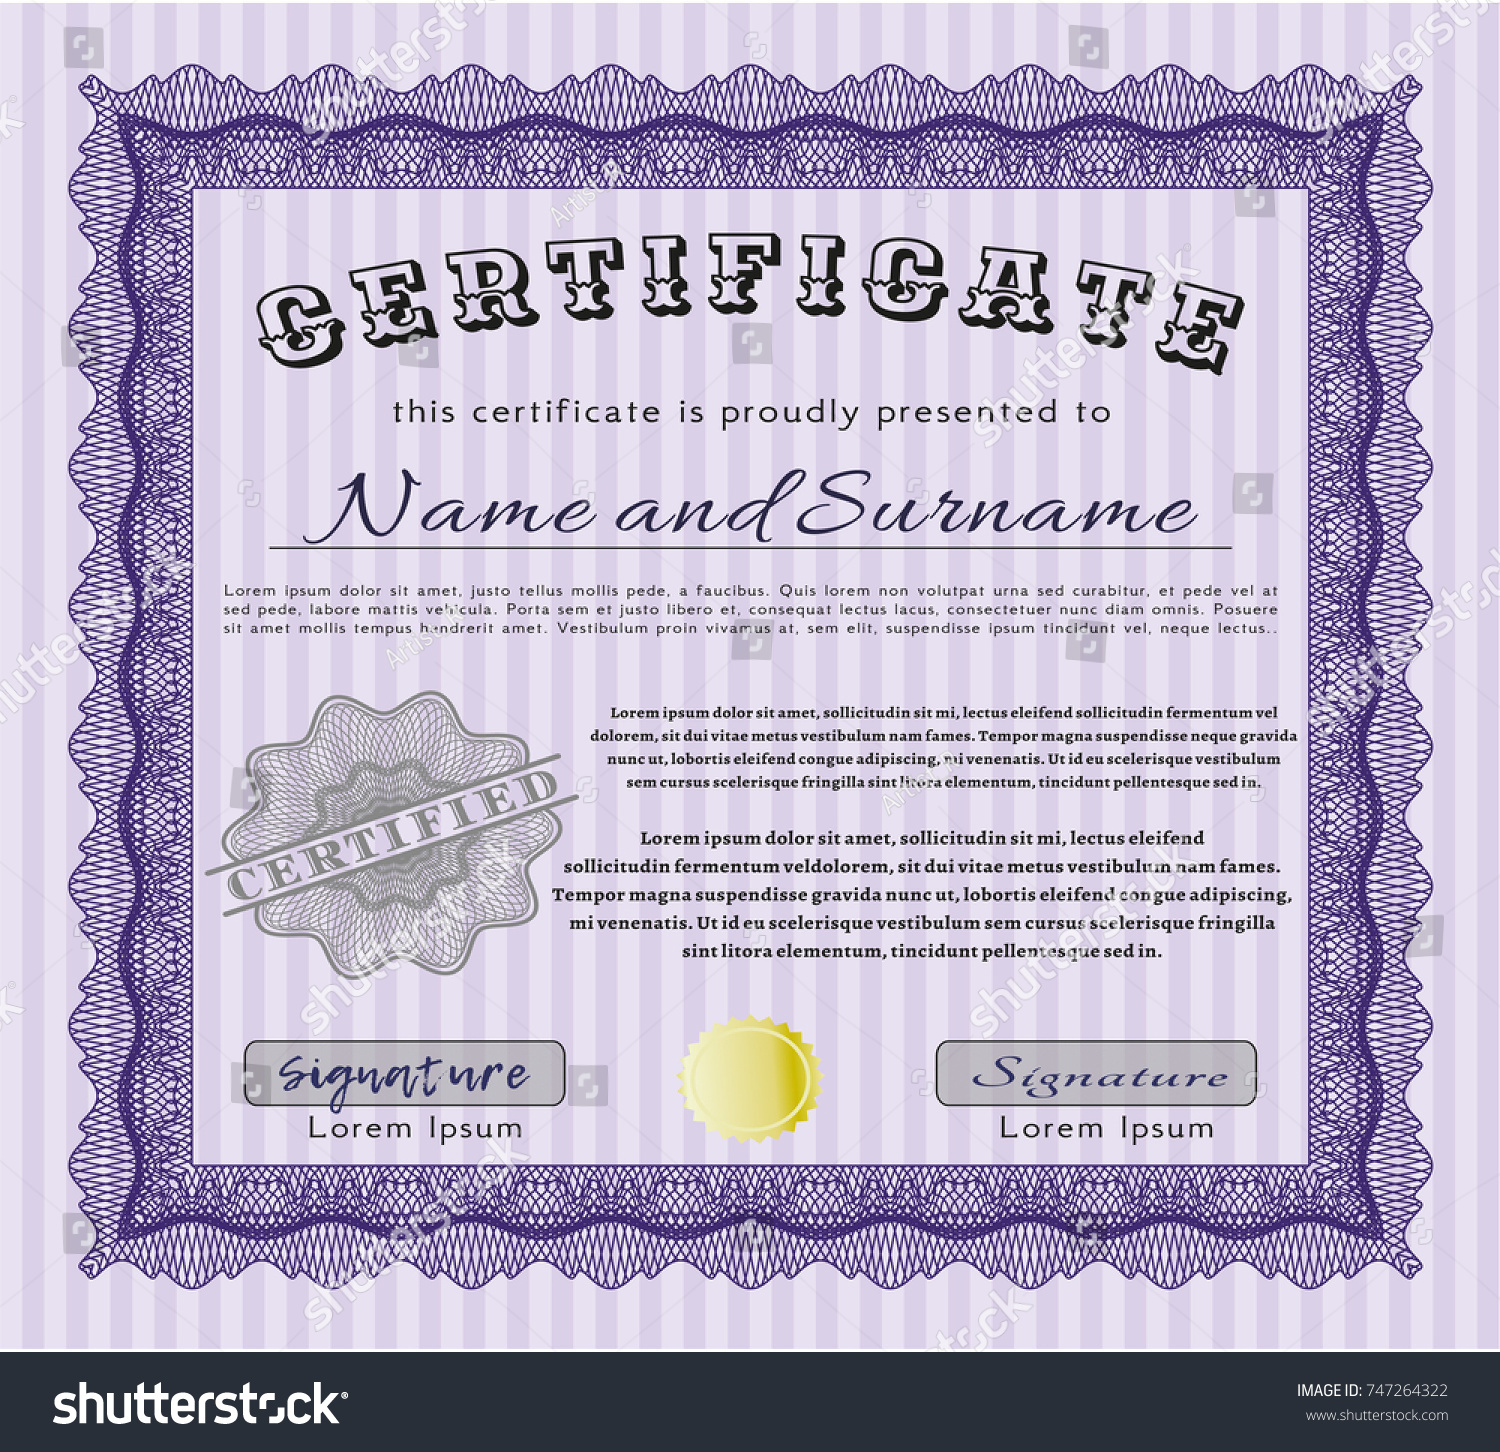 Violet diploma certificate template quality background stock violet diploma or certificate template with quality background artistry design detailed xflitez Images